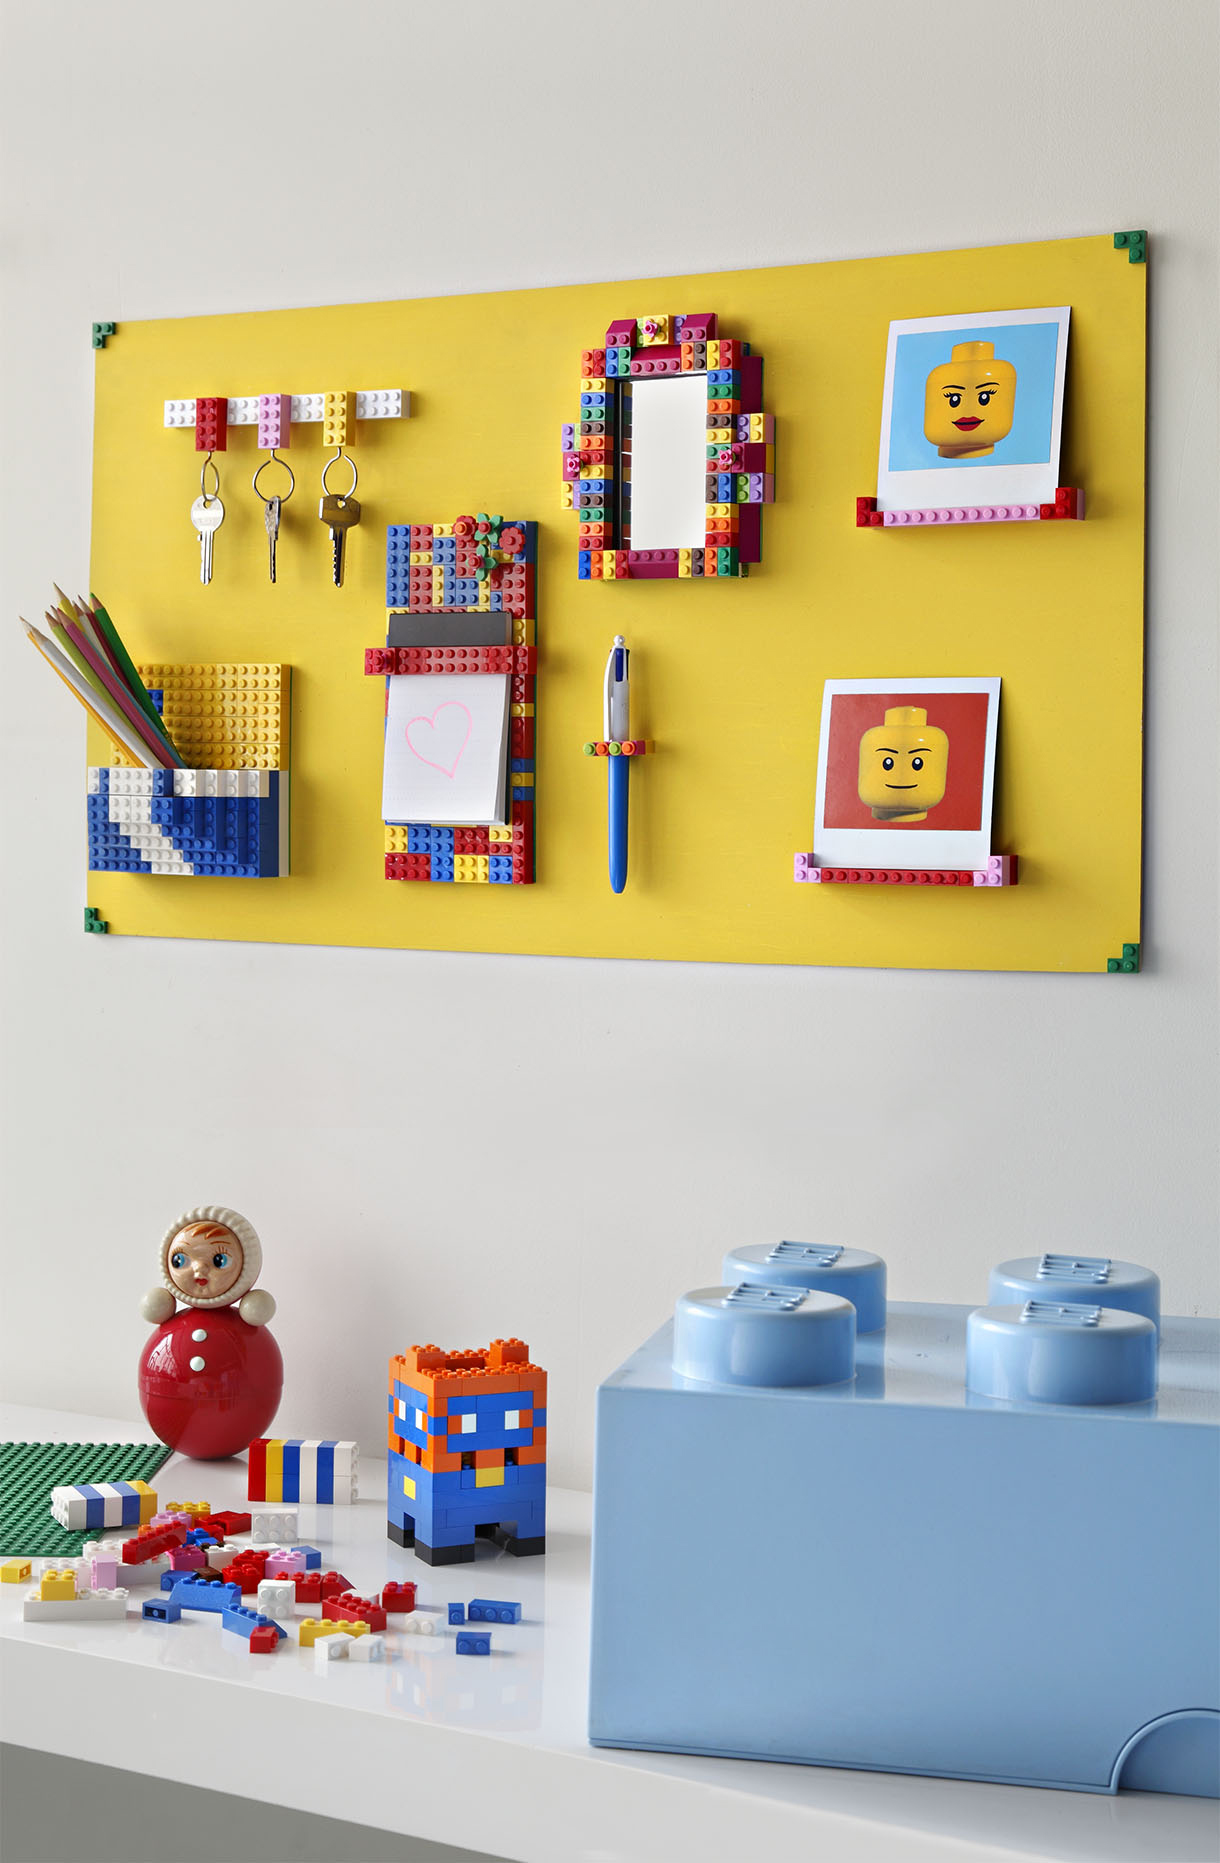 fabriquer un tableau lego mural en quelques tapes maison cr ative. Black Bedroom Furniture Sets. Home Design Ideas